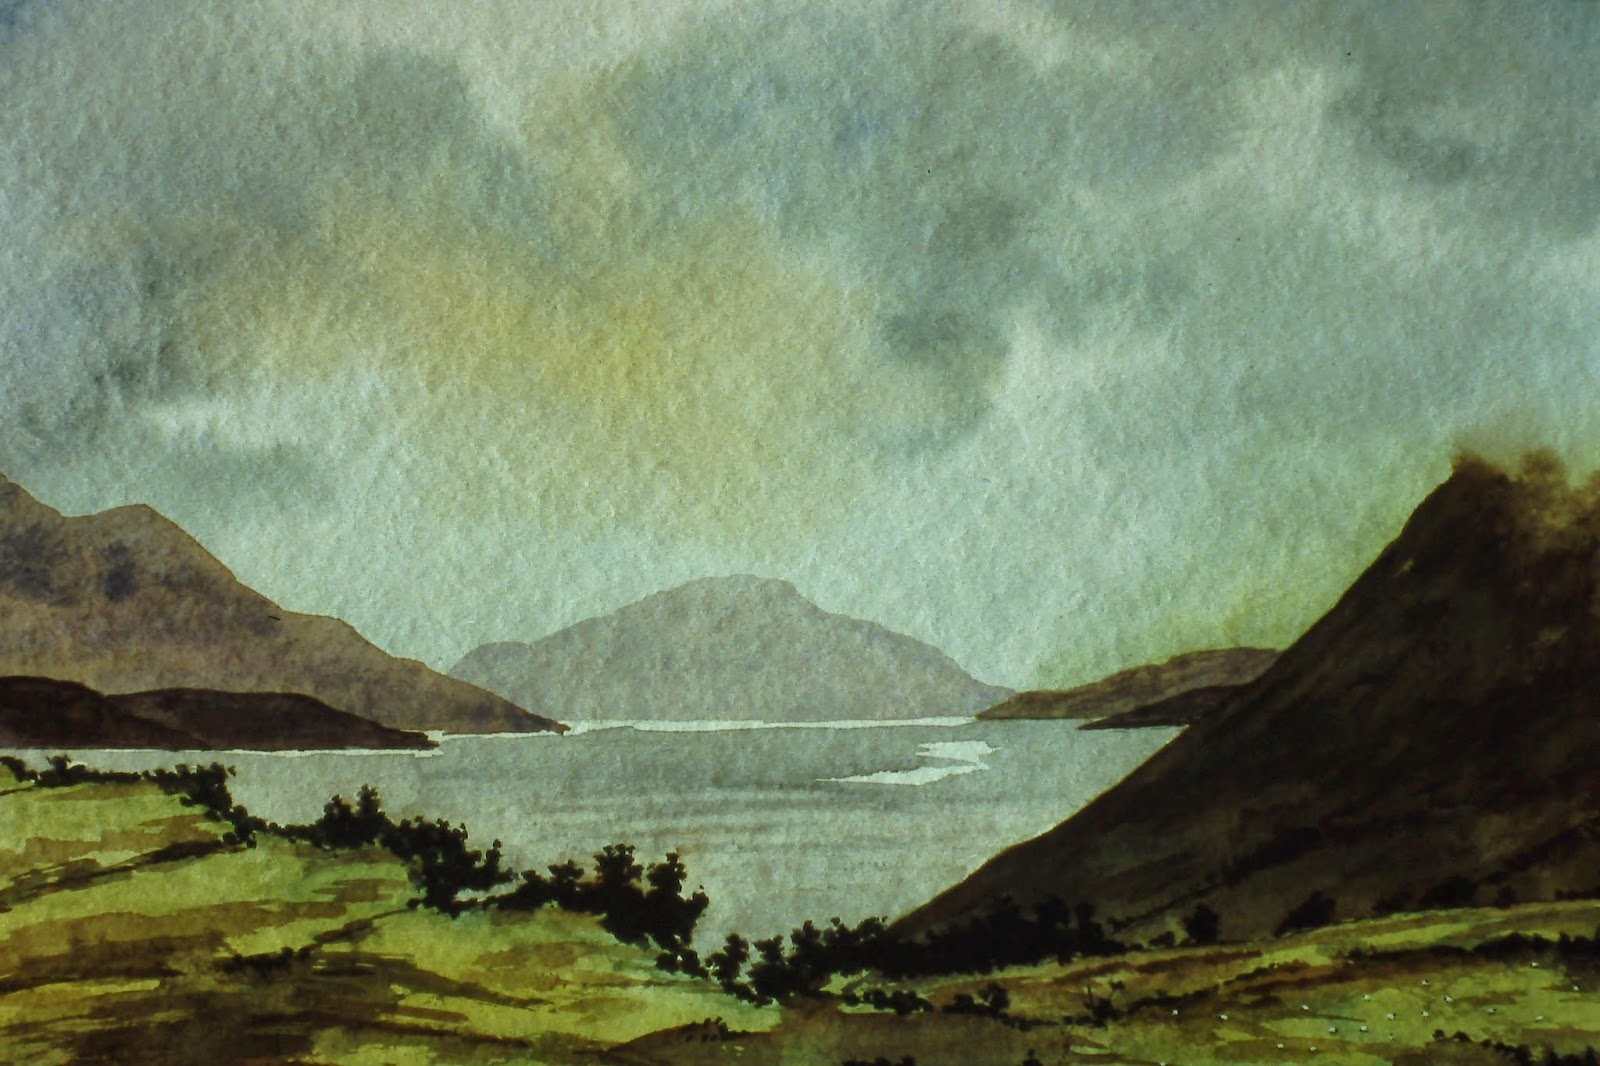 Loch Ness, Scotland  11x14 inches. Watercolor on paper, c. 1991.  In a private collection in Montrose, Scotland by Lenny Campello